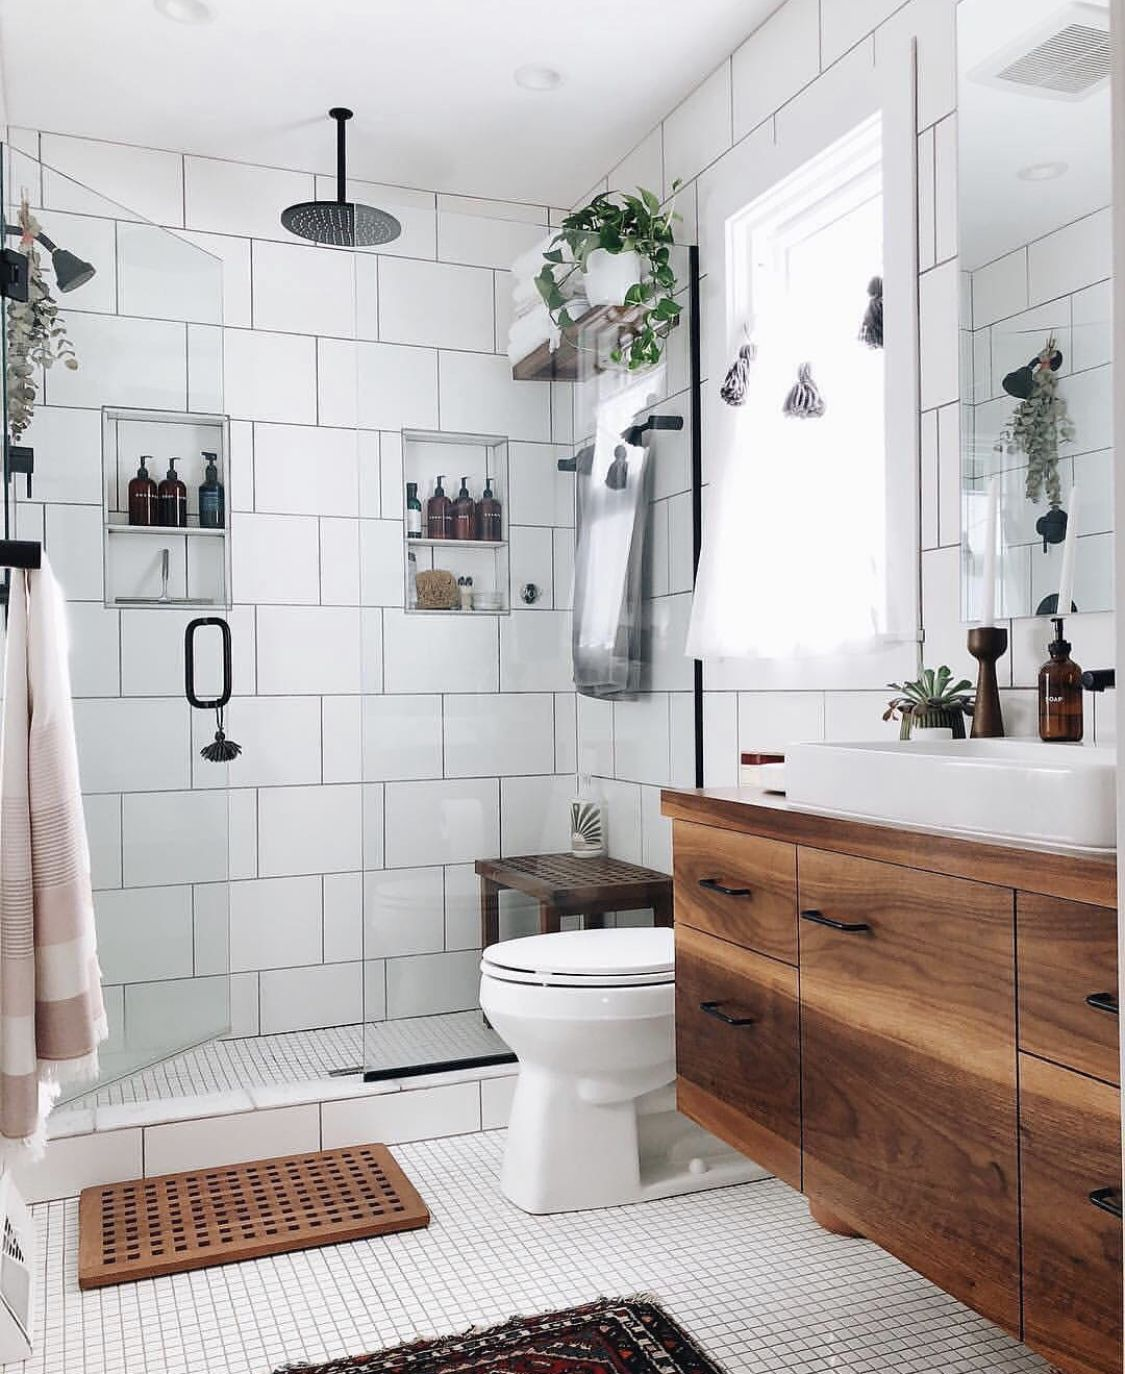 𝐩𝐢𝐧𝐭𝐞𝐫𝐞𝐬𝐭 𝐫𝐚𝐢𝐠𝐚𝐧𝐜𝐥𝐚𝐫𝐞 𝐢𝐧𝐬𝐭𝐚 𝐫𝐚𝐢𝐠𝐚𝐧𝐱𝐜𝐥𝐚𝐫𝐞 Bathroom Inspiration Bright Bathroom House Bathroom